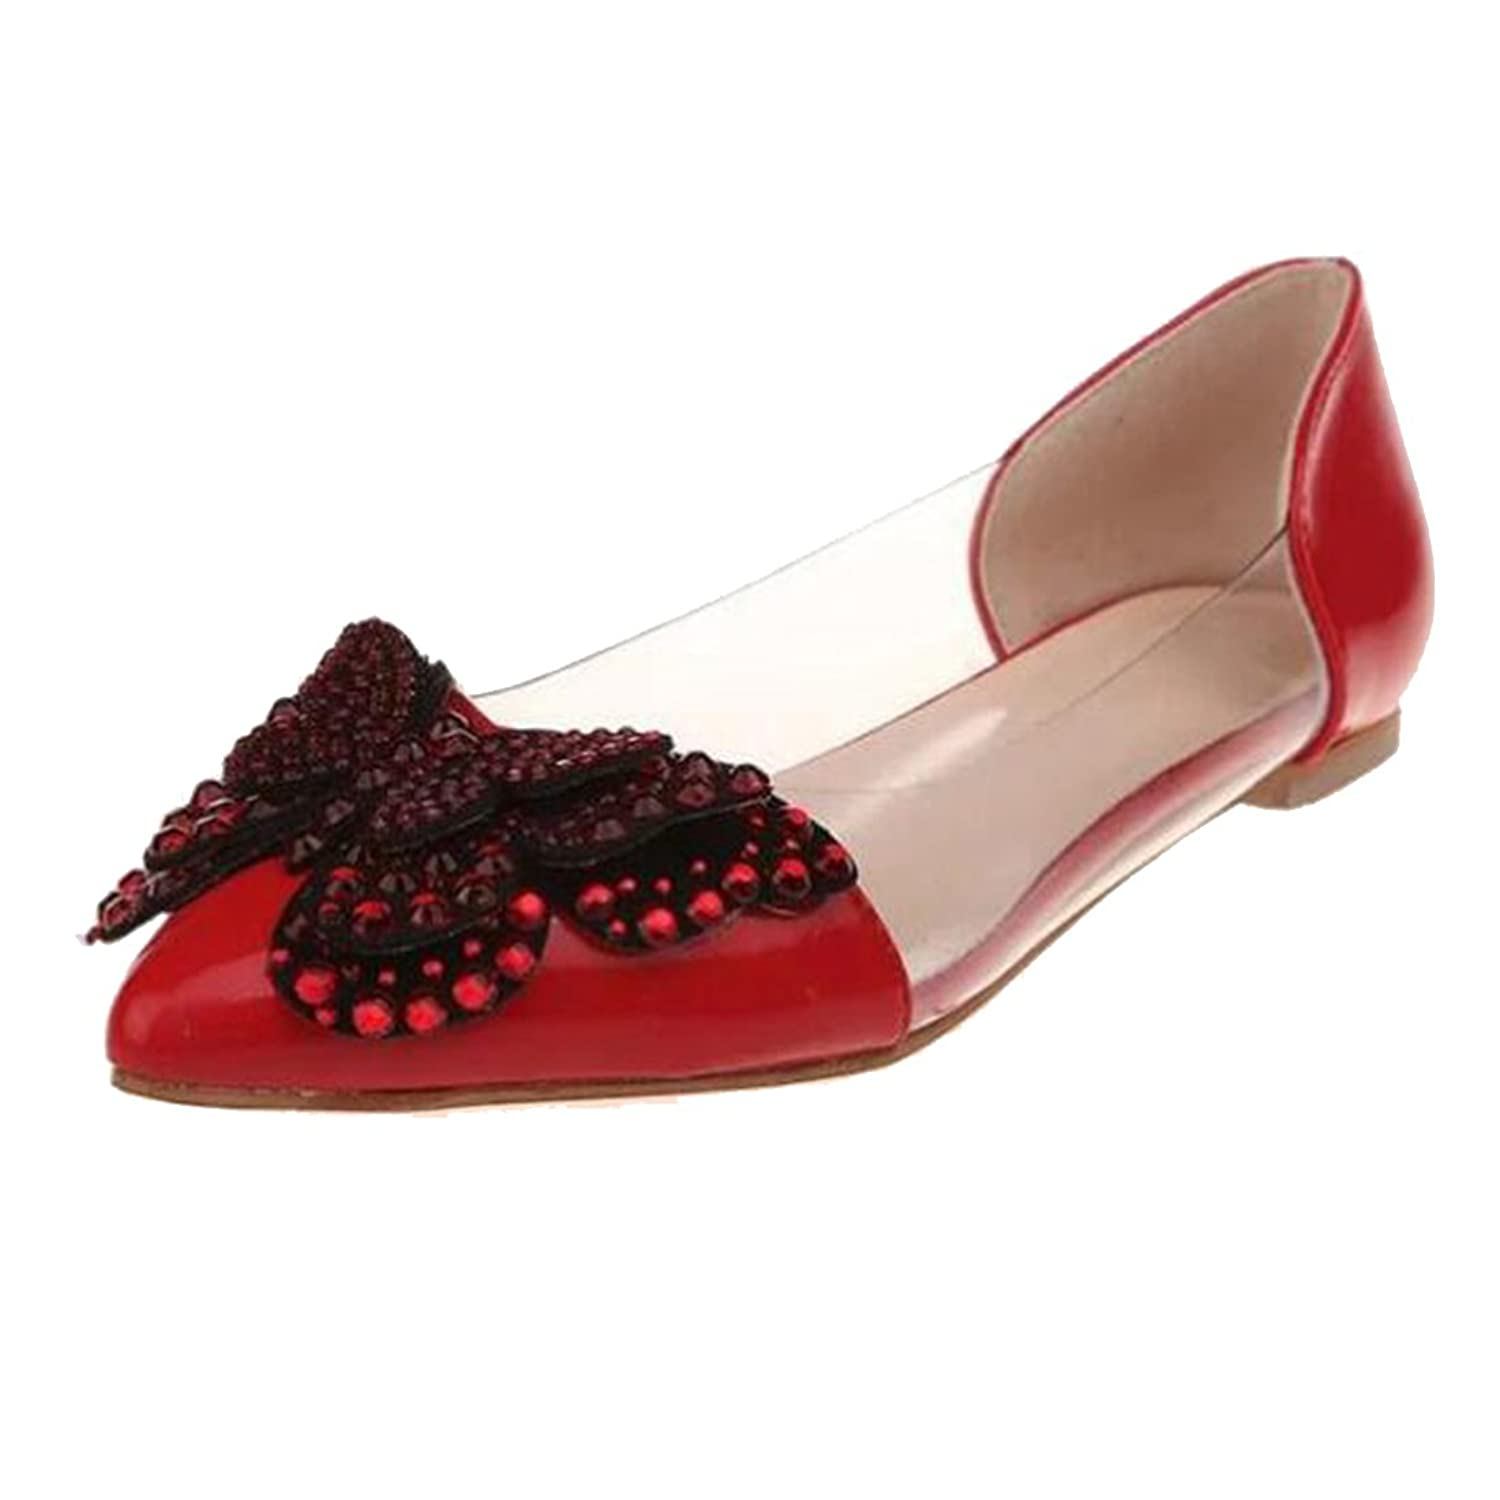 COVOYYAR Women's Rhinestone Butterfly Decor Pointed Toe Ballet Flats Slip On Shoes